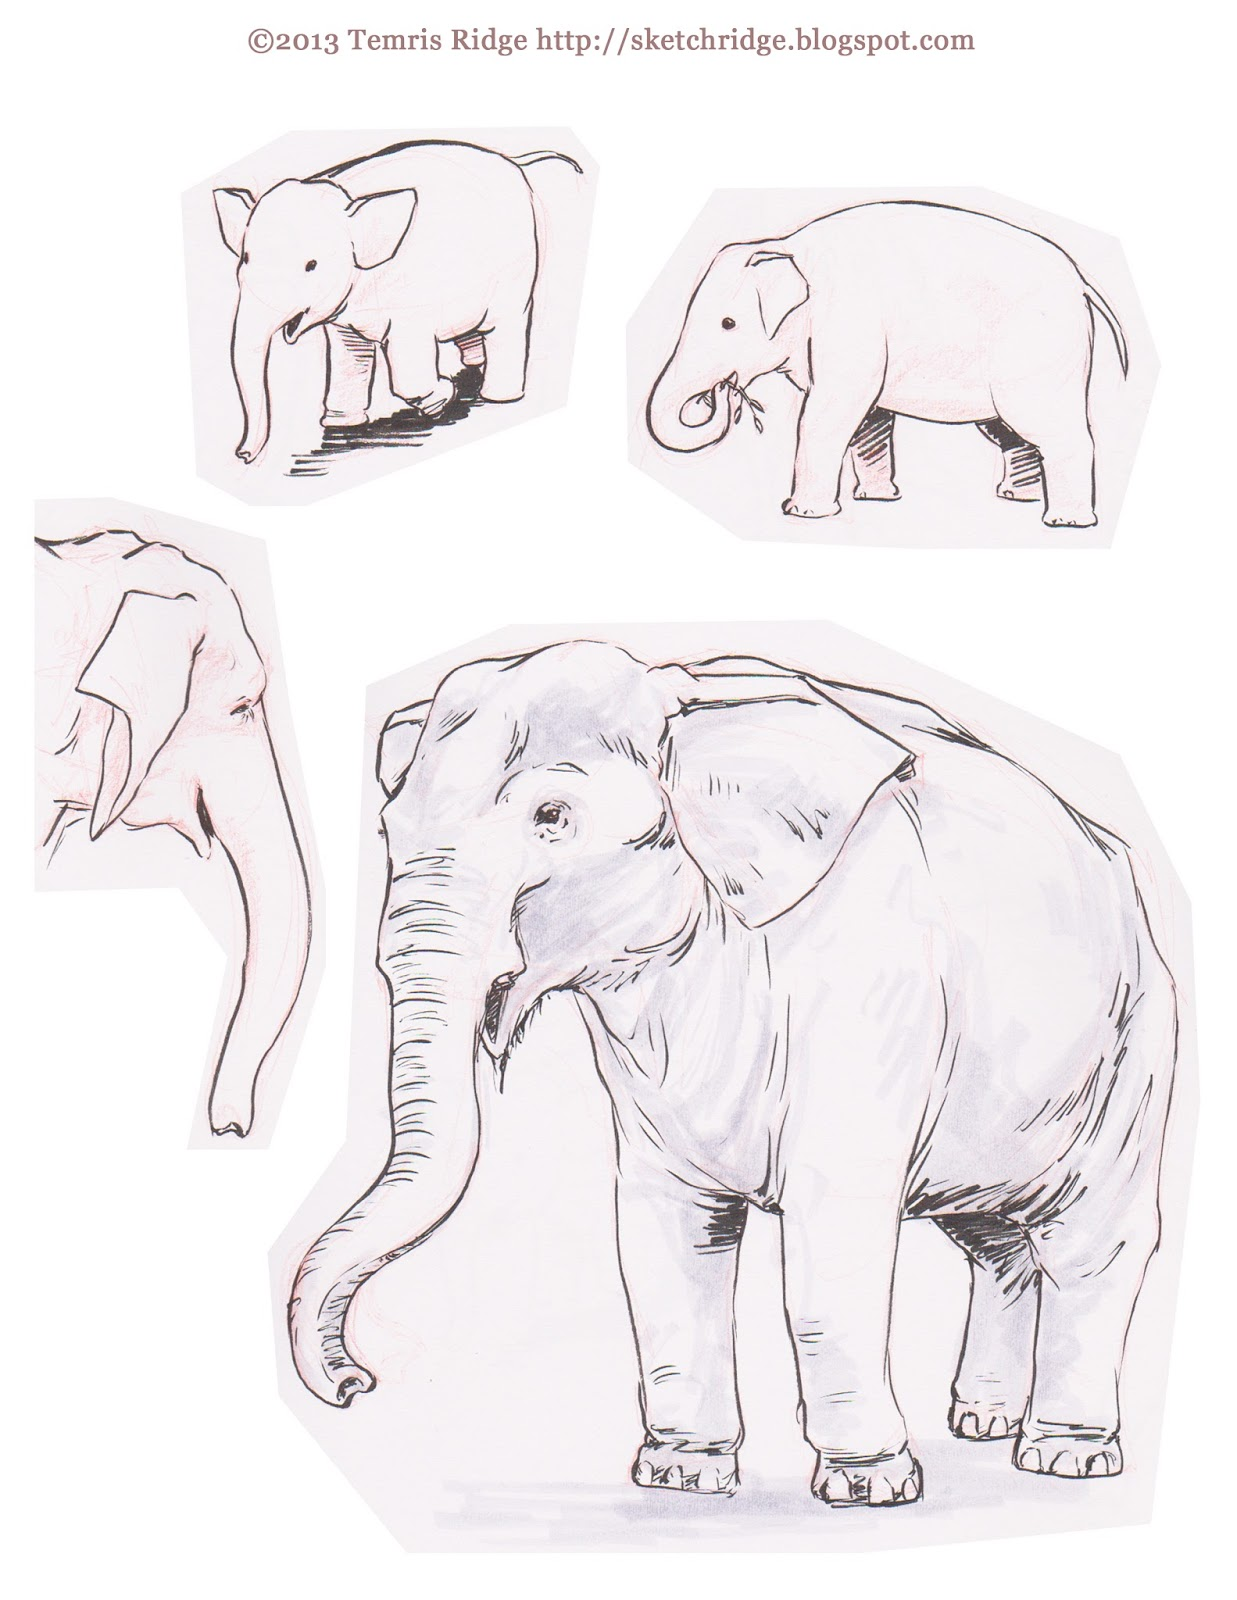 1237x1600 Sketch Ridge More Zoo Drawing With Asifa Portland And